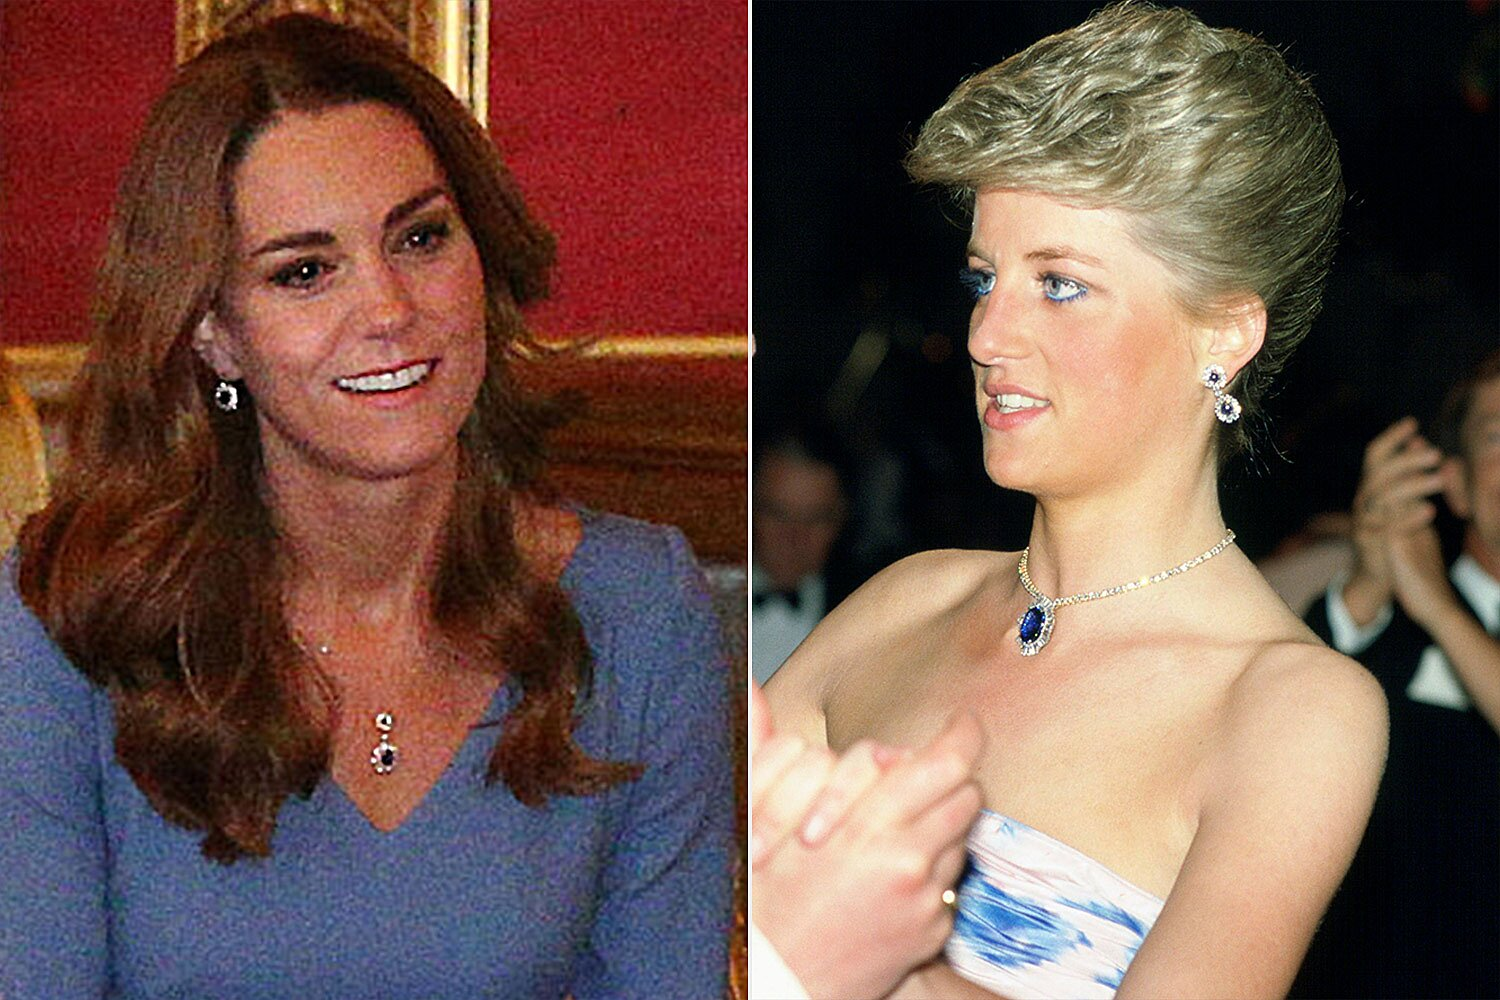 meghan markle and kate middleton wearing princess diana s jewelry people com meghan markle and kate middleton